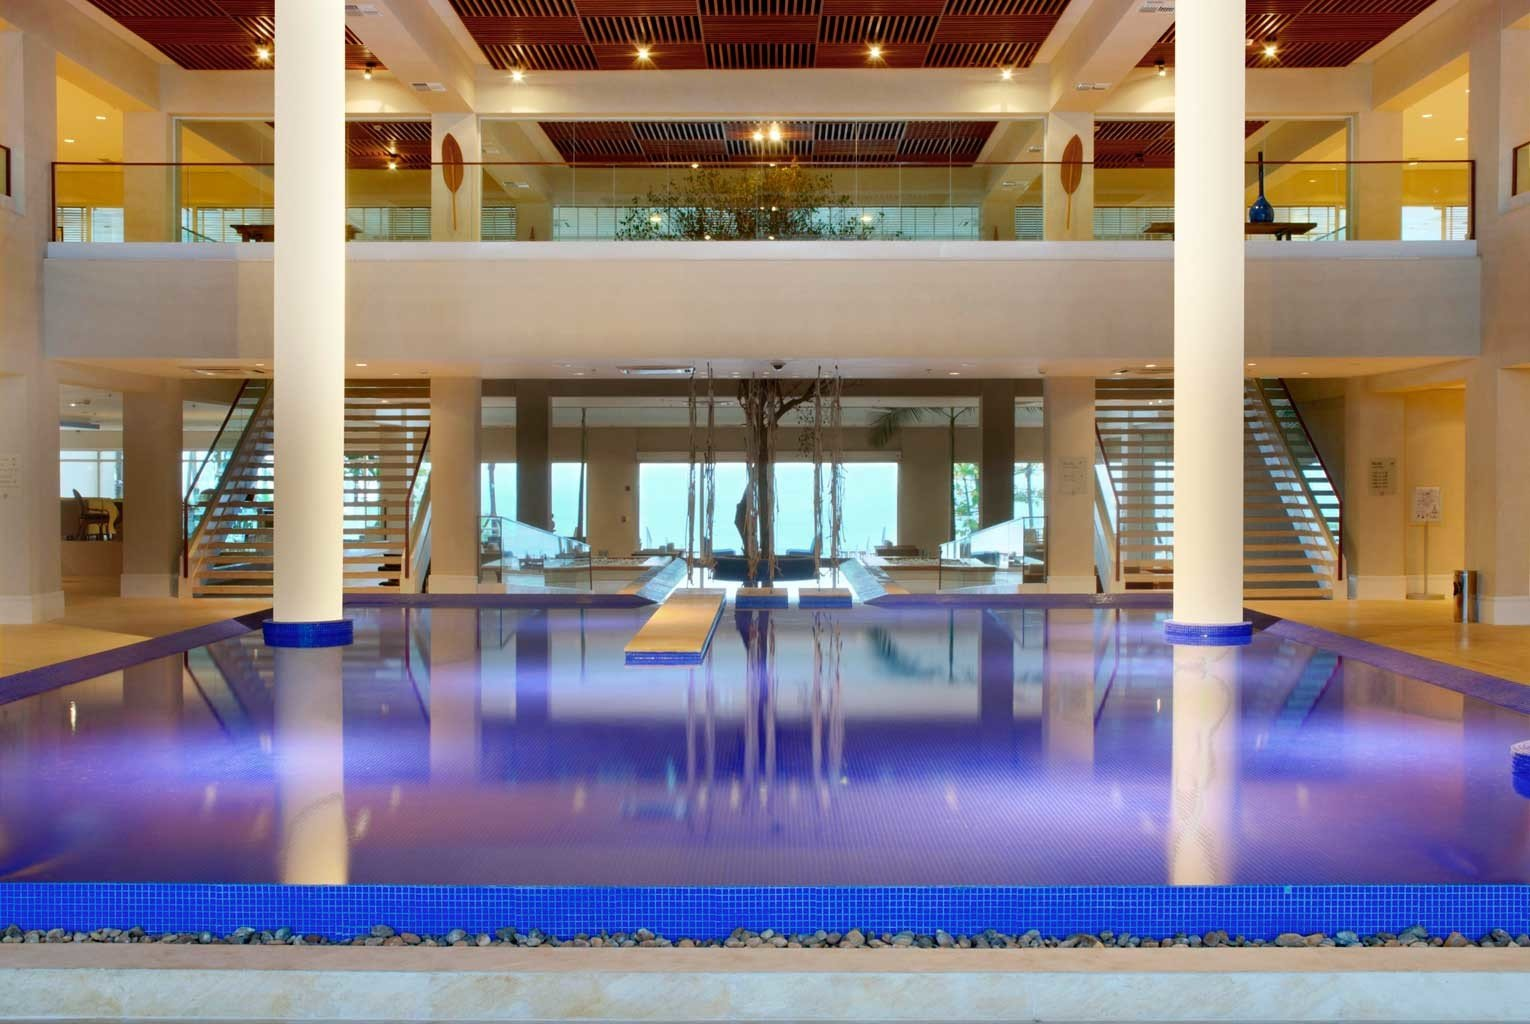 Family Play Pool Resort swimming pool leisure building leisure centre plaza convention center Lobby shopping mall empty